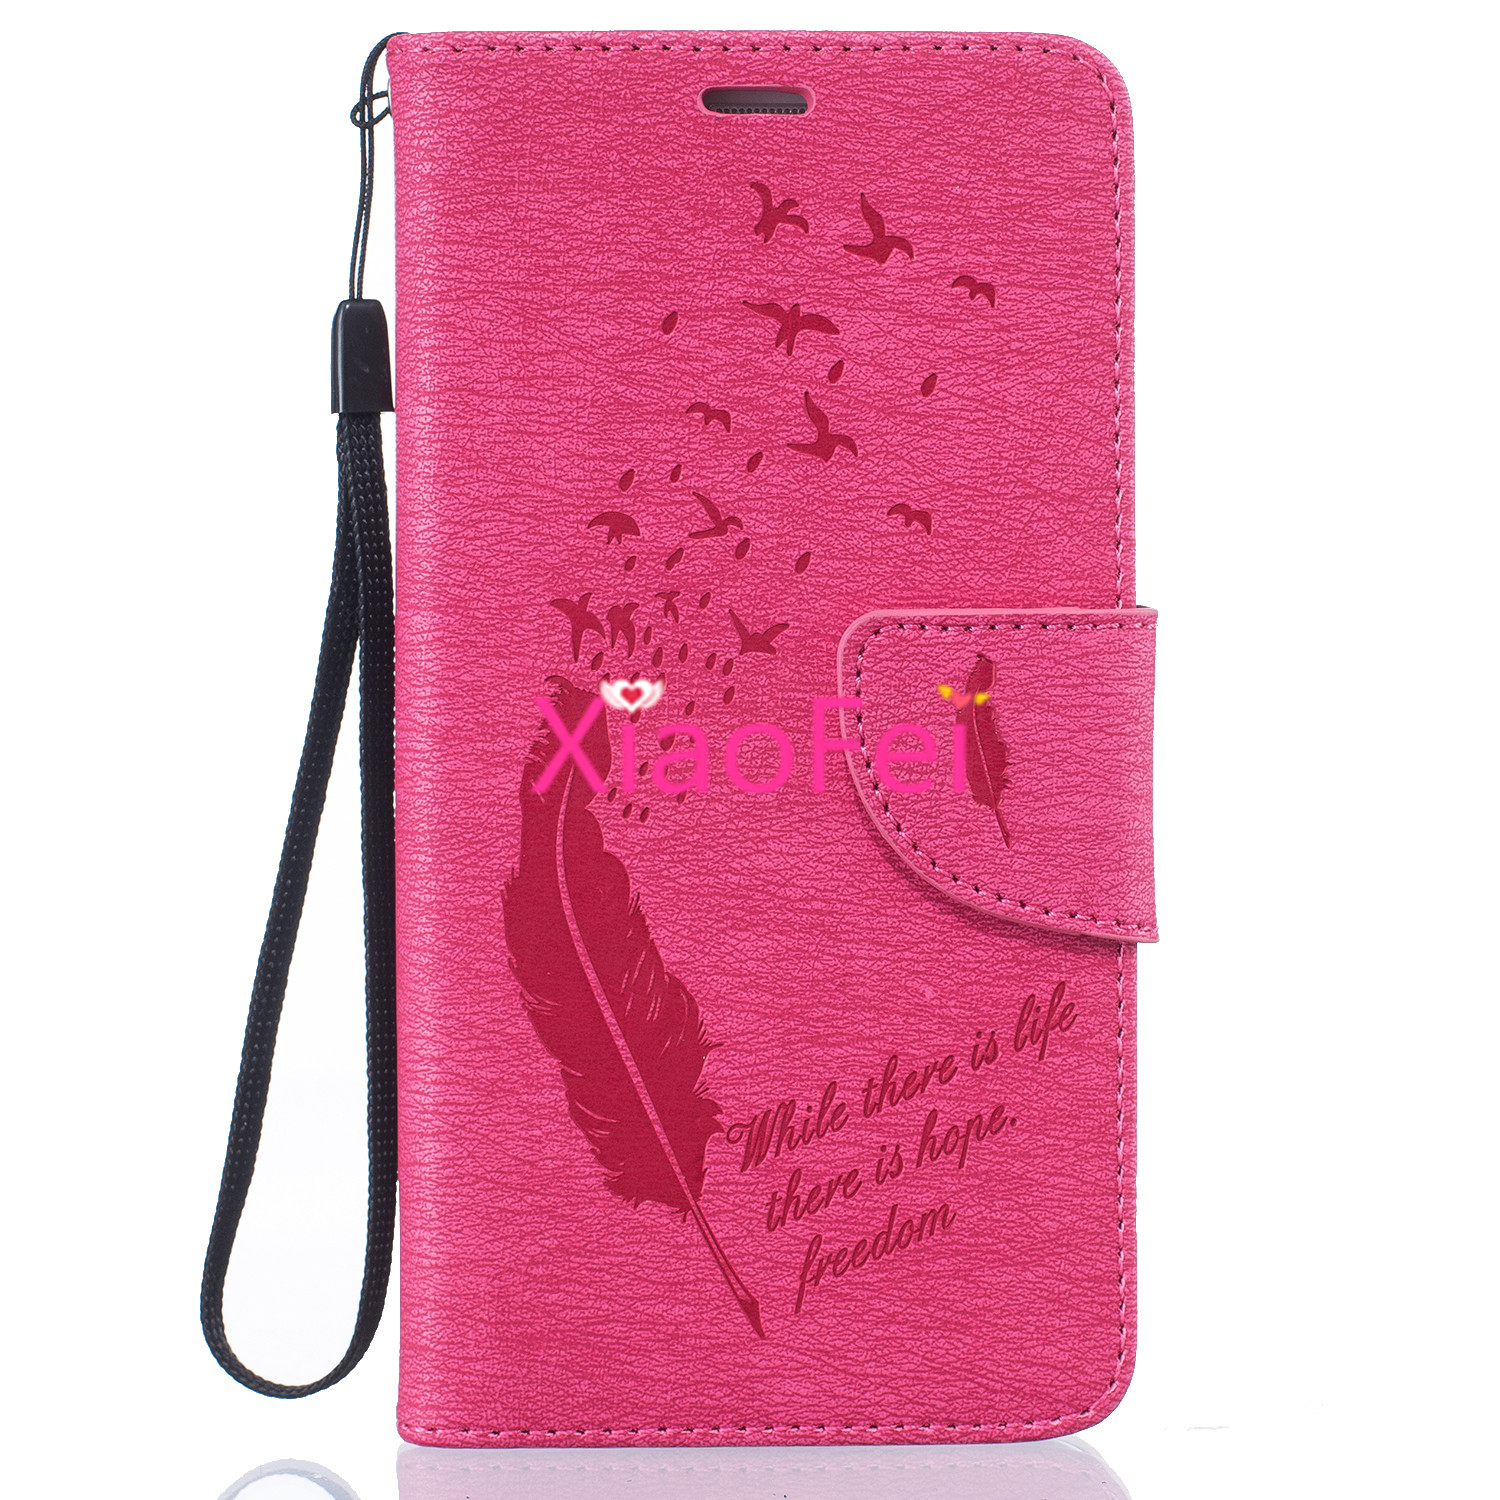 New Arrival Hot Sale Wallet PU Leather For Samsung A5 2016 A510 Flip Wallet Bag Flip With Stand Cove Cases with Card Slots